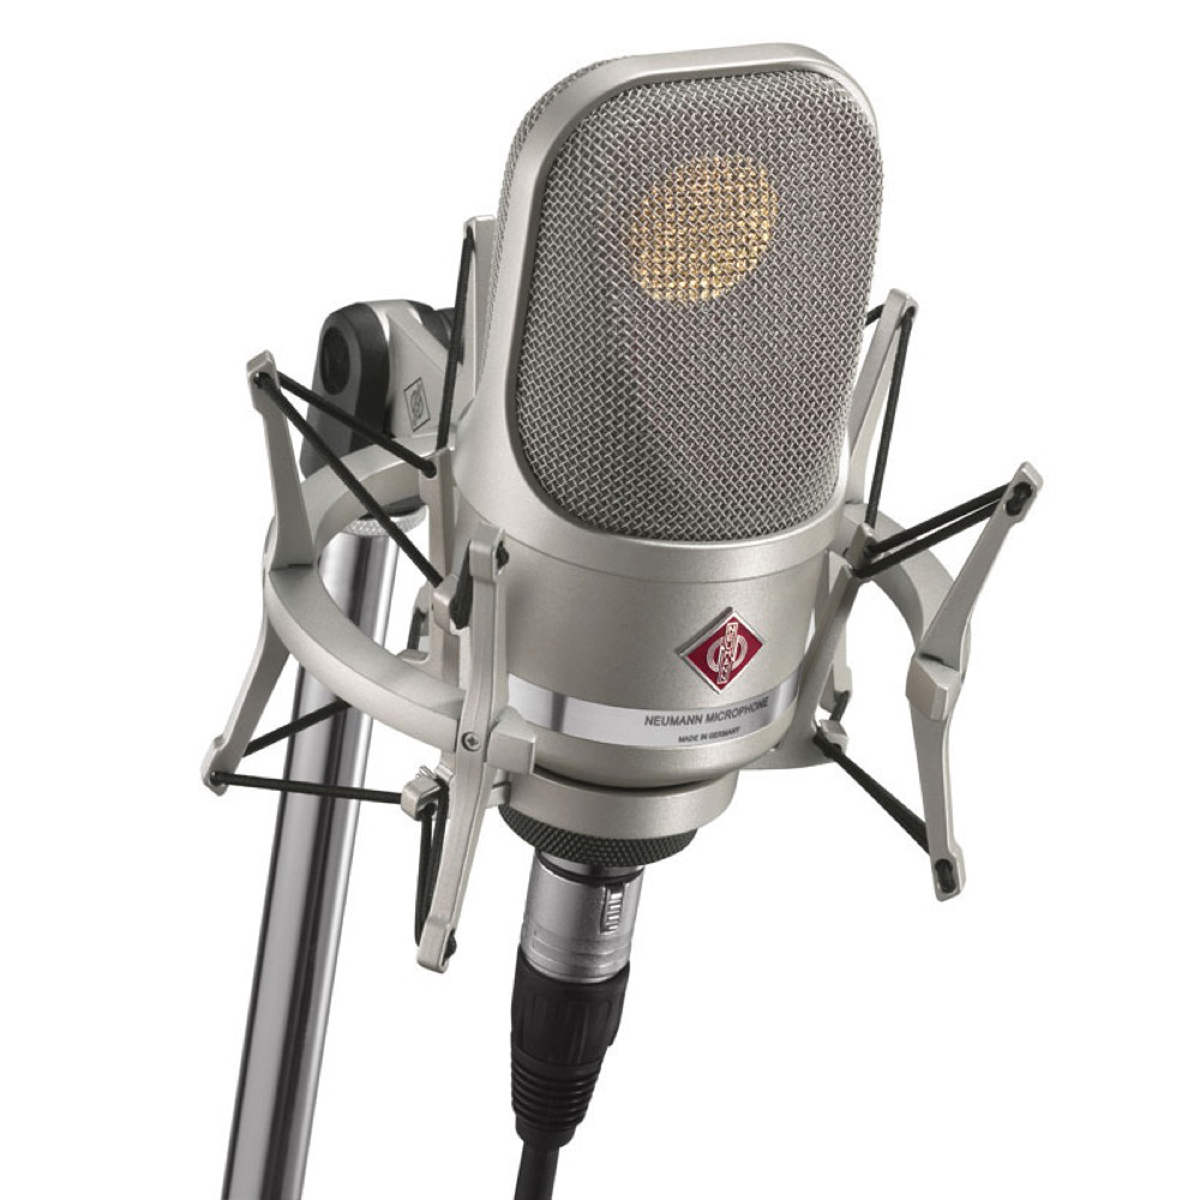 Neumann Tlm 107 Studio Condenser Microphone Sonic Circus Power Pc Microphones From P48 Or Phantom 48 Volts